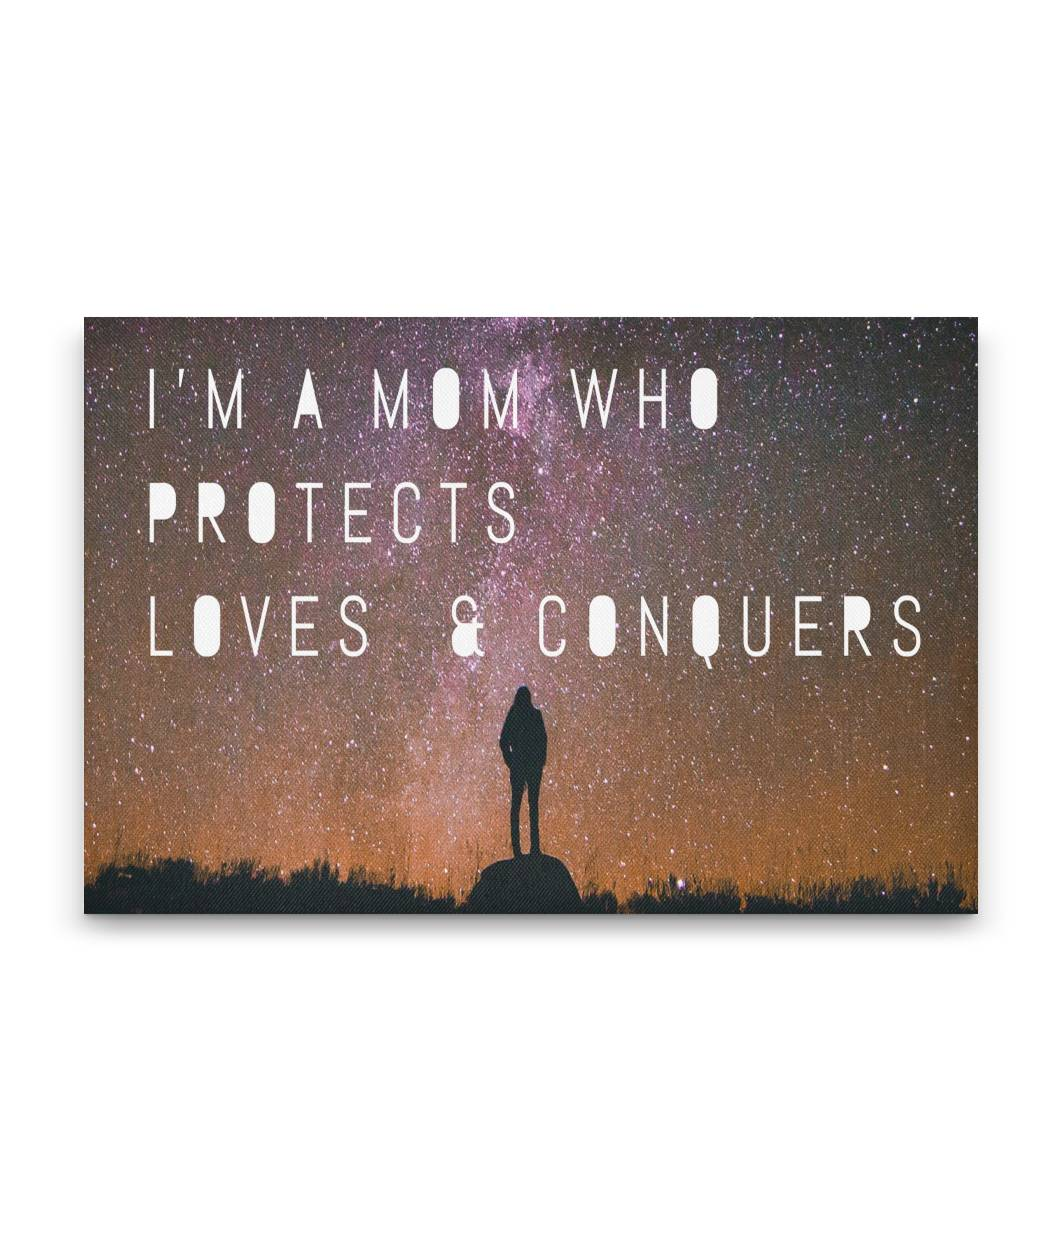 Im A Mom Who Protects, Loves, & Conquers